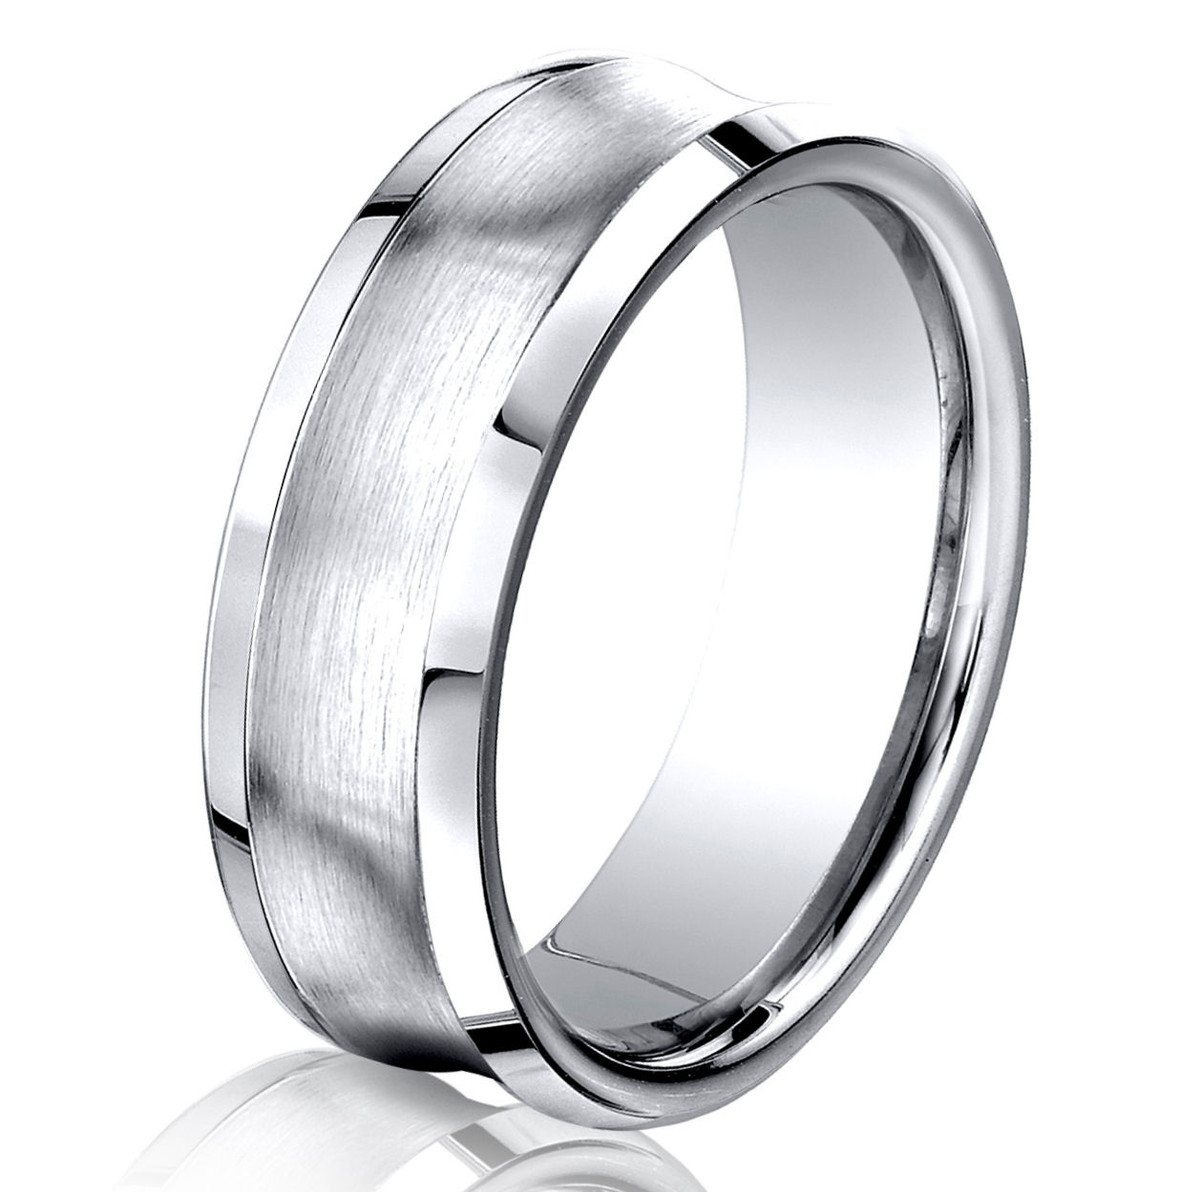 com men band with diamond sizes inlay carbon gray amazon rings ring s cobalt wedding and black fiber dp